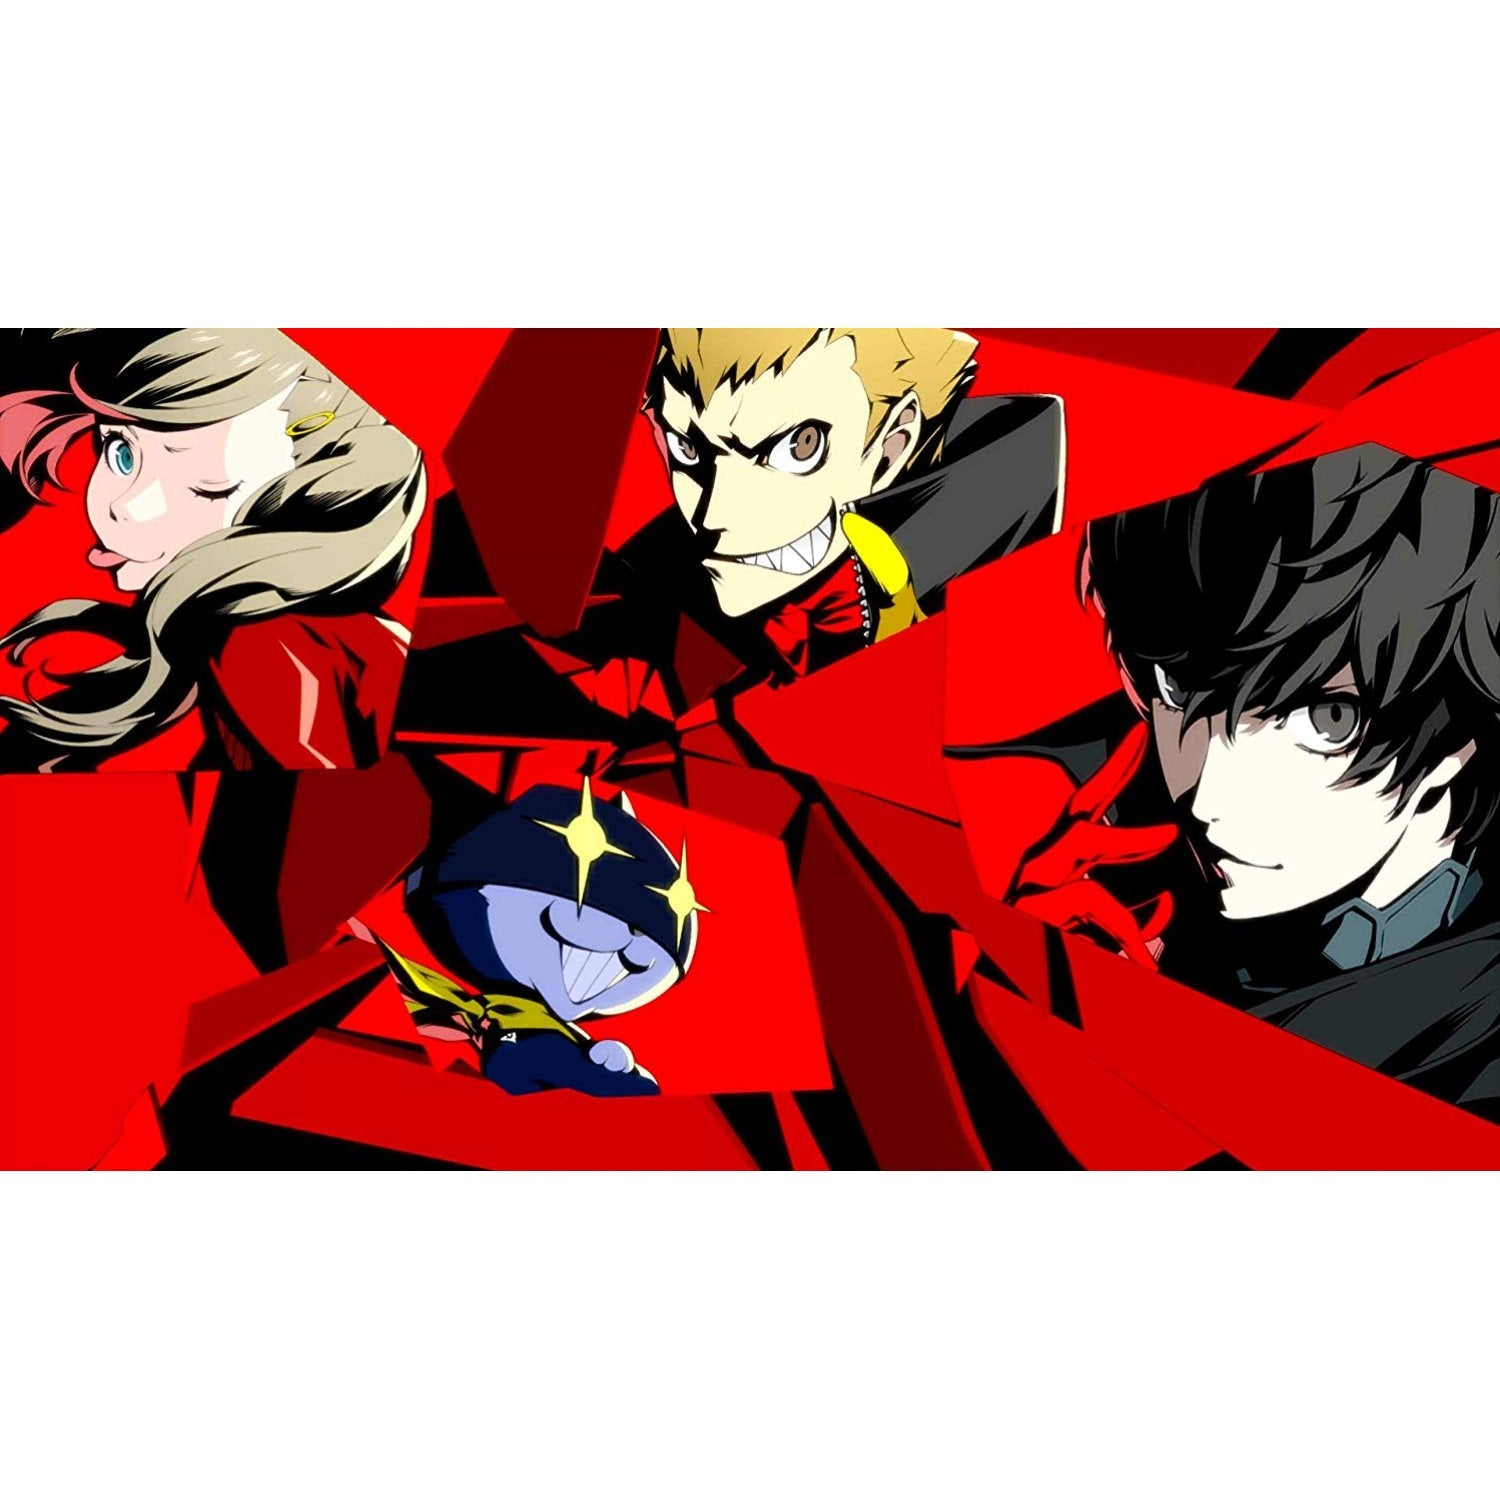 PS4 Persona 5 Royal